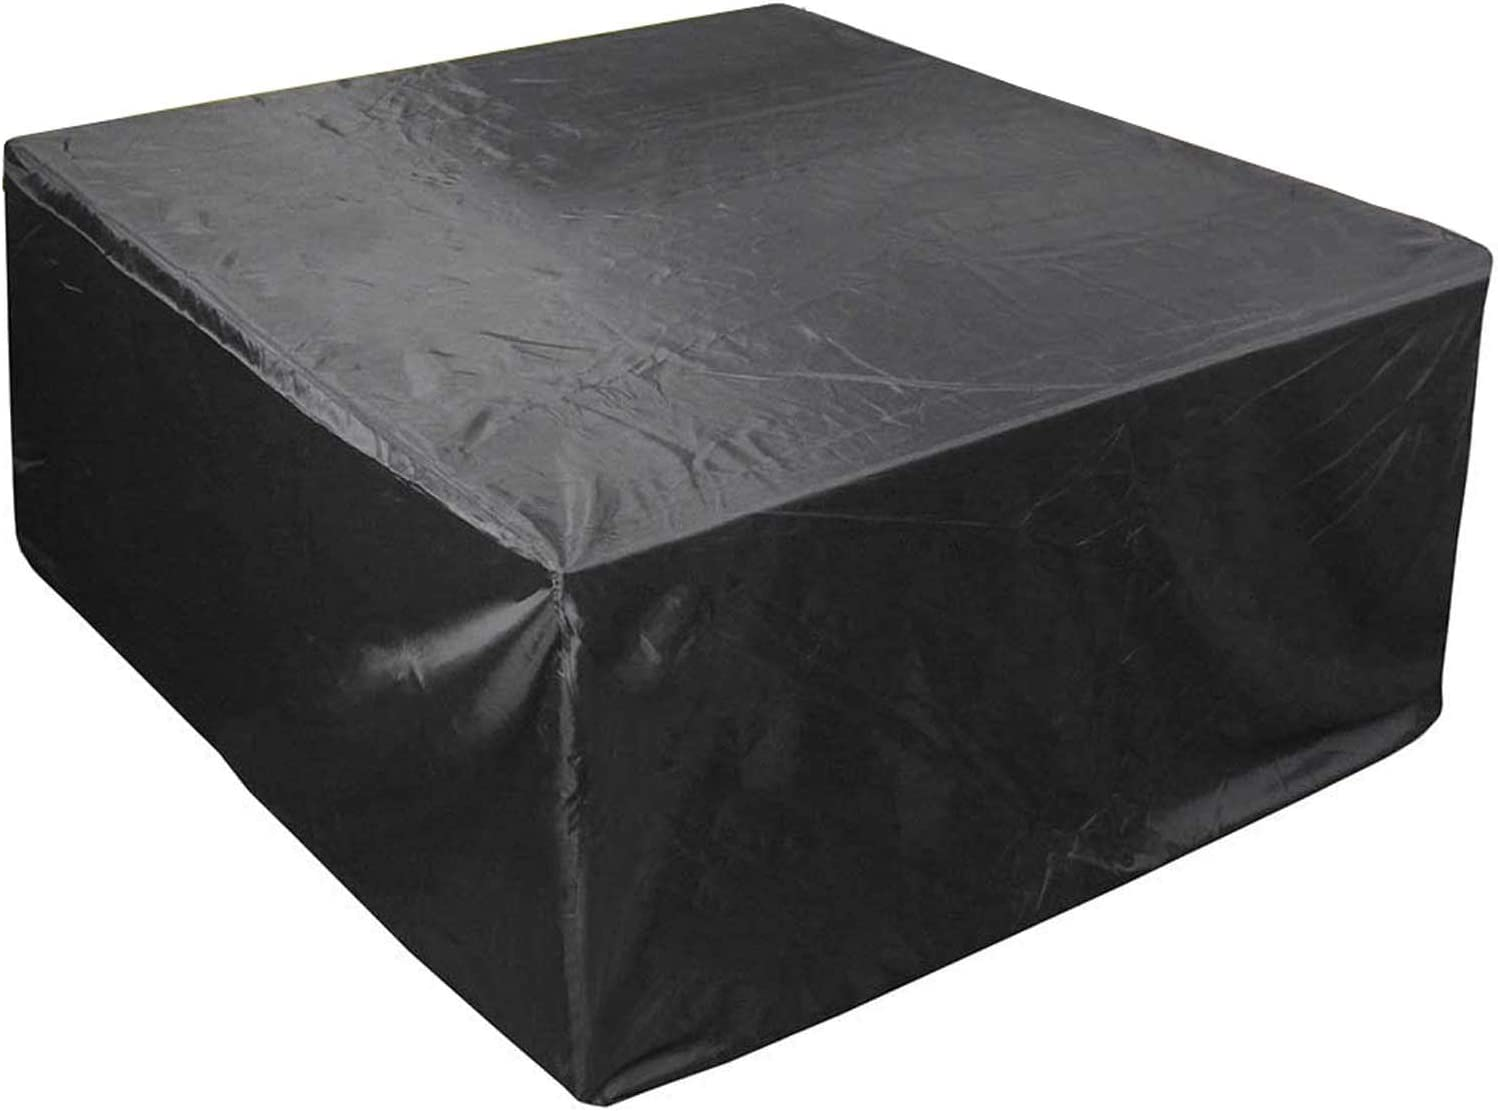 Garden Furniture Max 65% OFF Covers Outdoor Ox Anti-UV Waterproof Windproof Challenge the lowest price